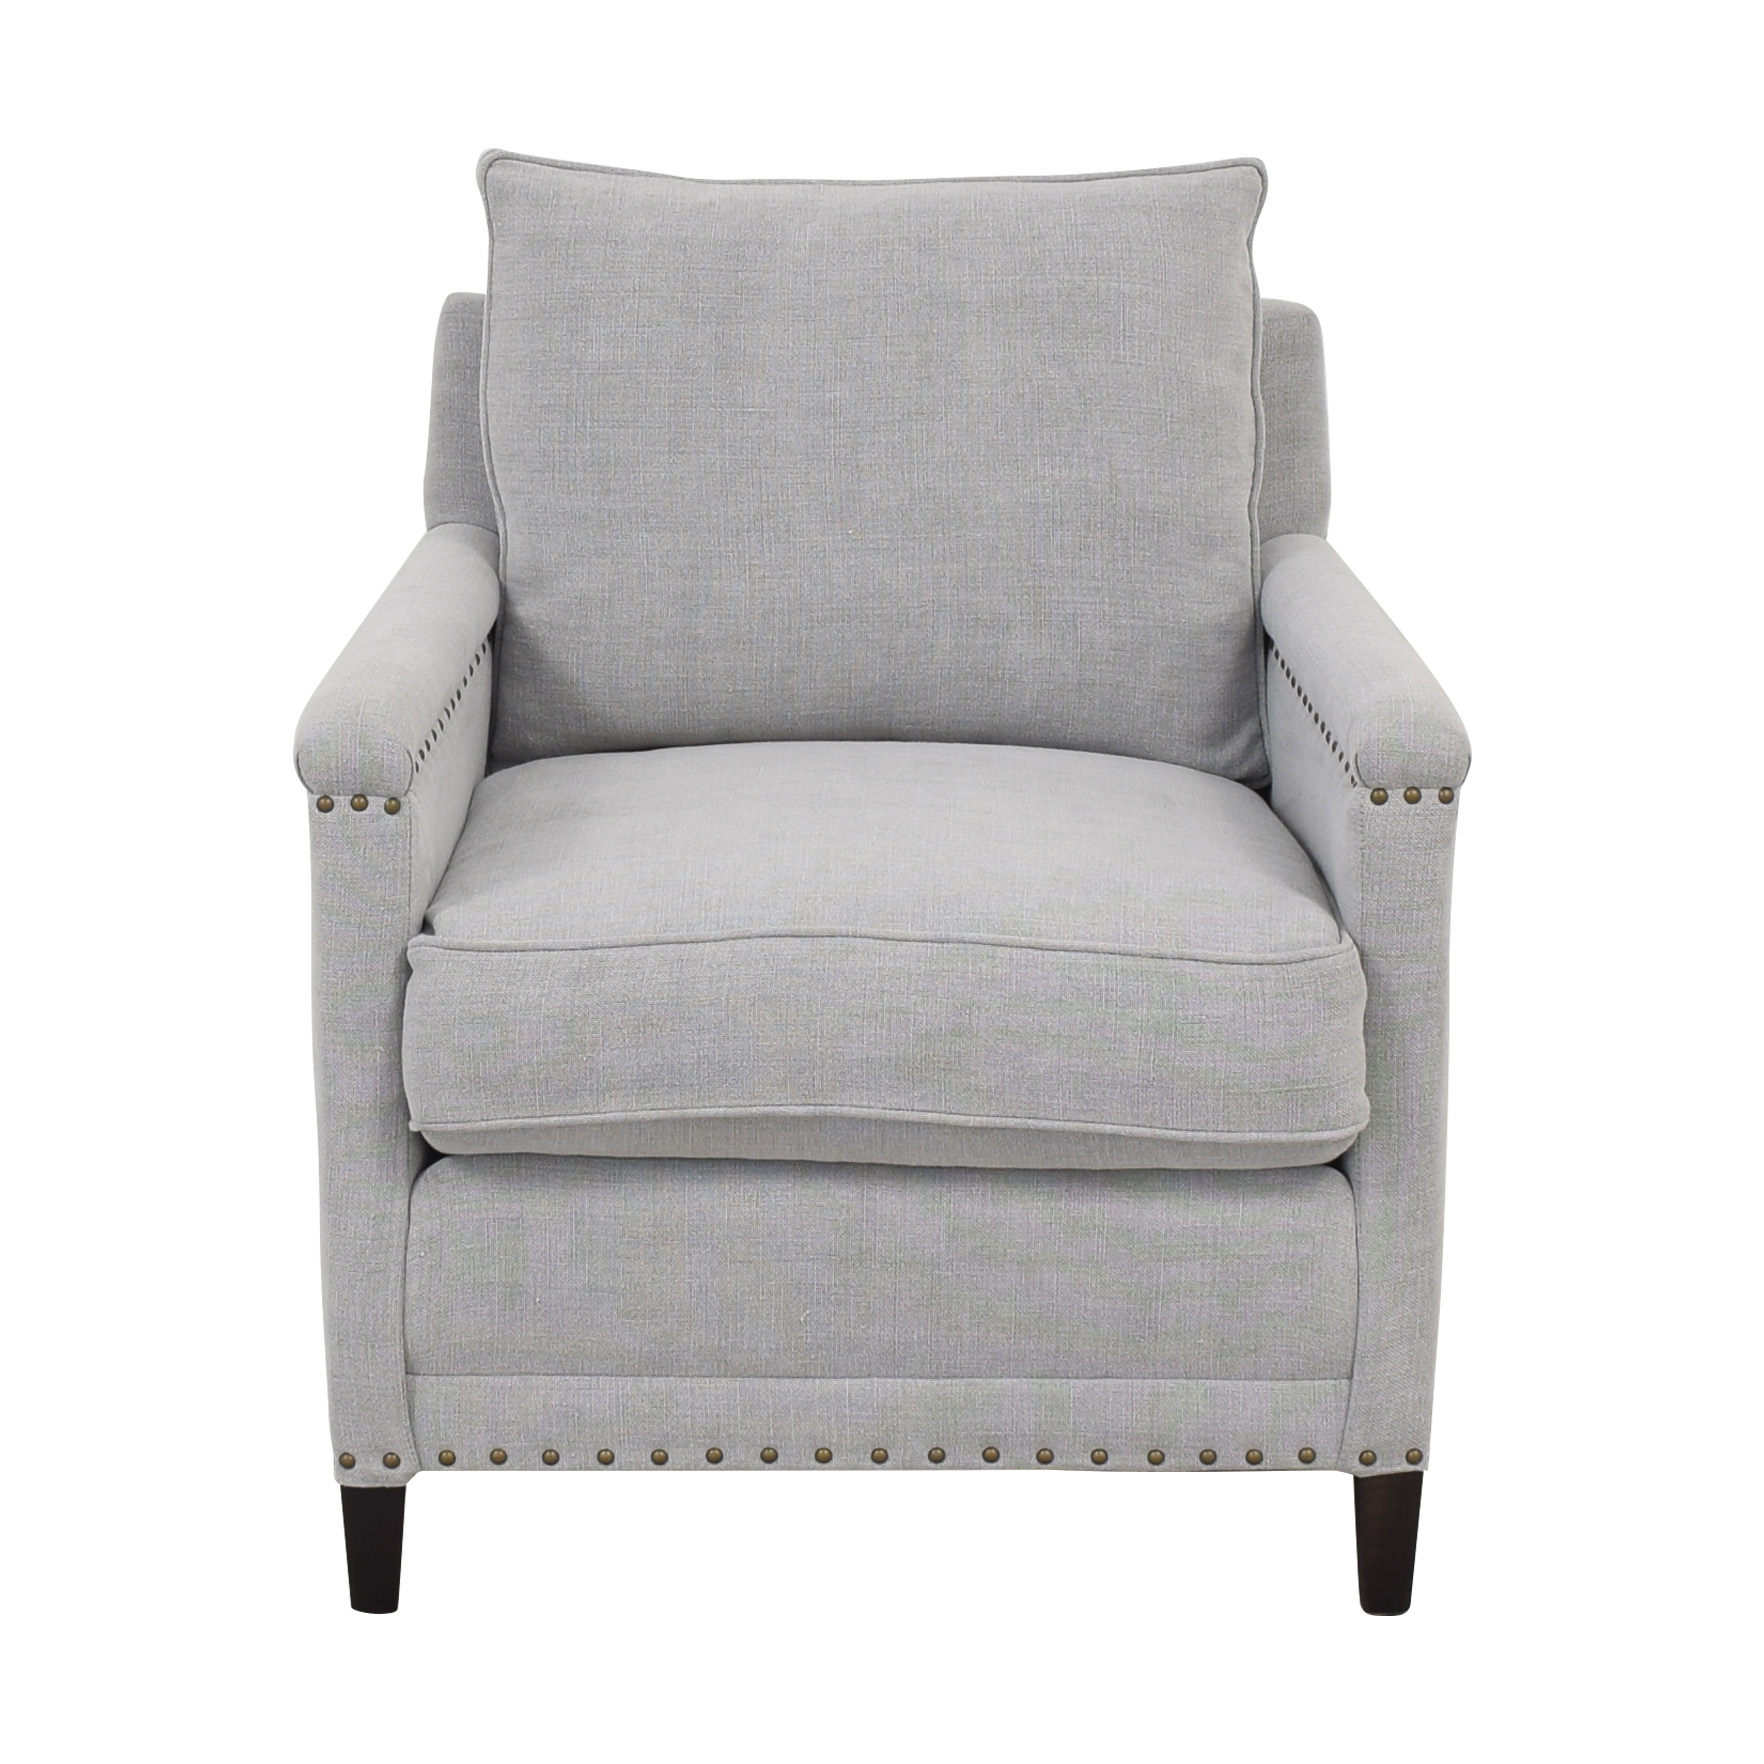 buy Williams Sonoma Addison Chair with Nailheads Williams Sonoma Accent Chairs